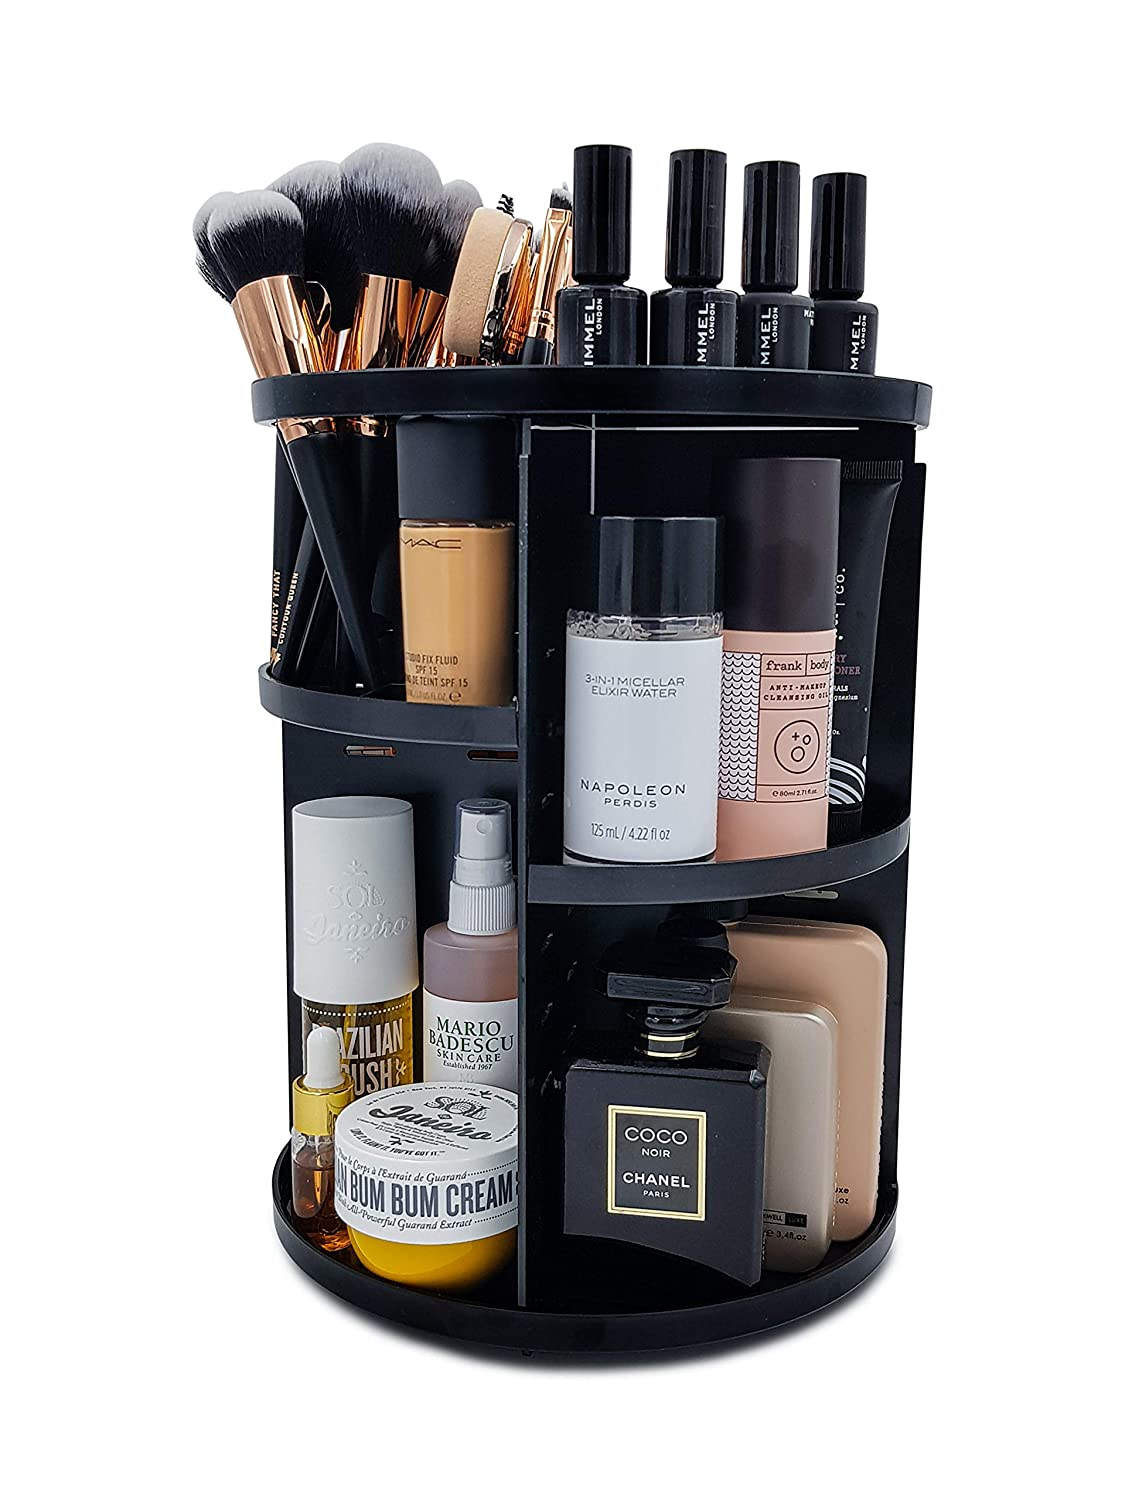 """Luxx Chicc 360 Rotating Makeup Organizer, Cosmetics Carousel with 8 Cubbies Eliminates Bathroom Countertop Clutter and Keeps Your Favorite Beauty Products at Your Fingertips (12.2""""H x 9.06""""W)"""